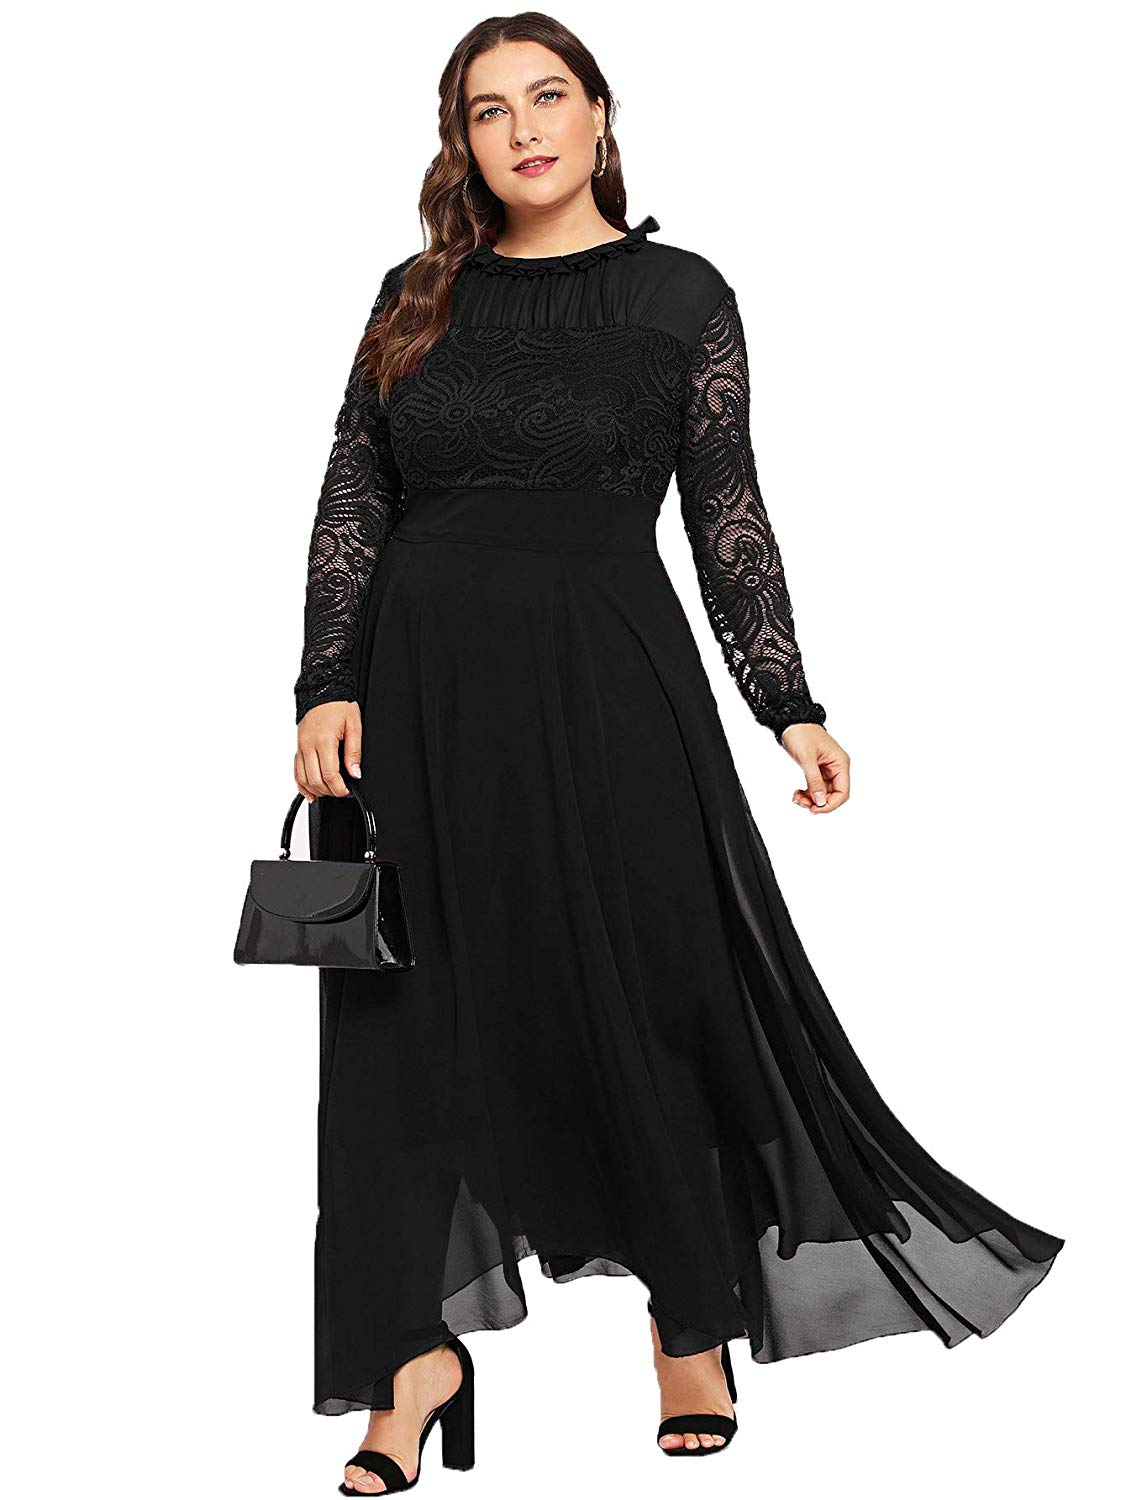 Milumia Women\'s Vintage Floral Lace Long Sleeve Ruched Neck Flowy Long  Dress Plus Size Black Dresses